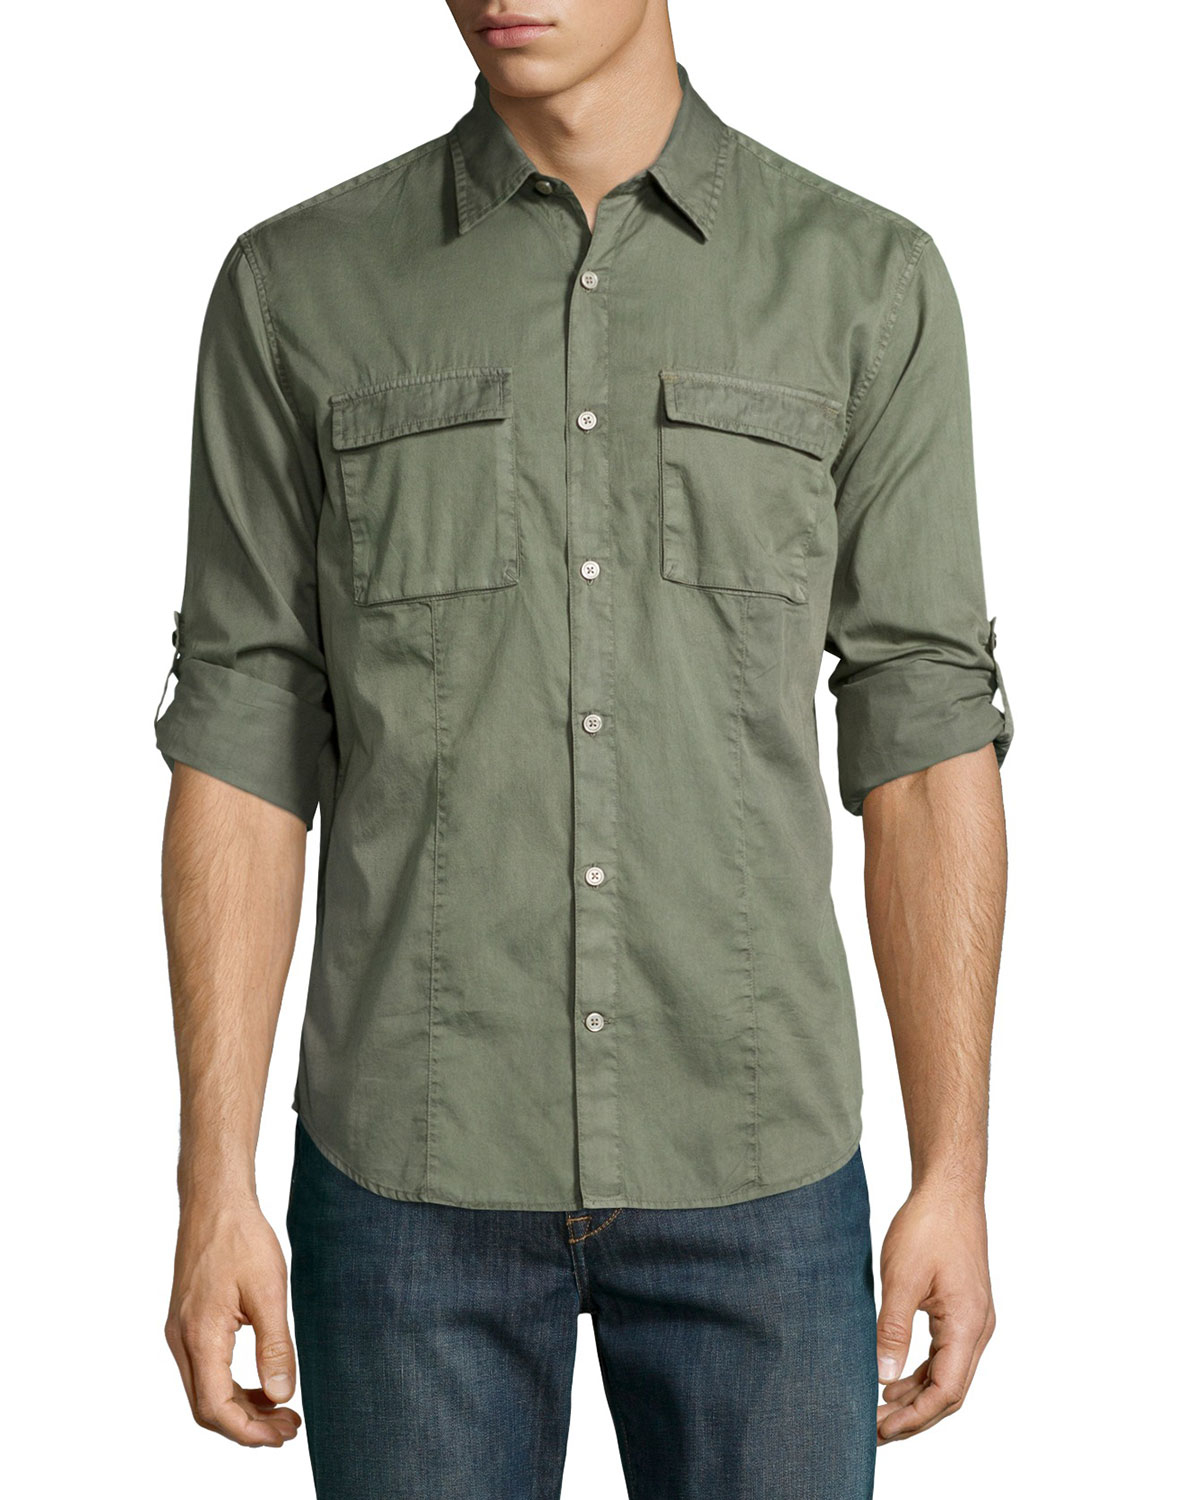 John varvatos chino roll tab utility shirt in green for for Men s roll tab sleeve shirts